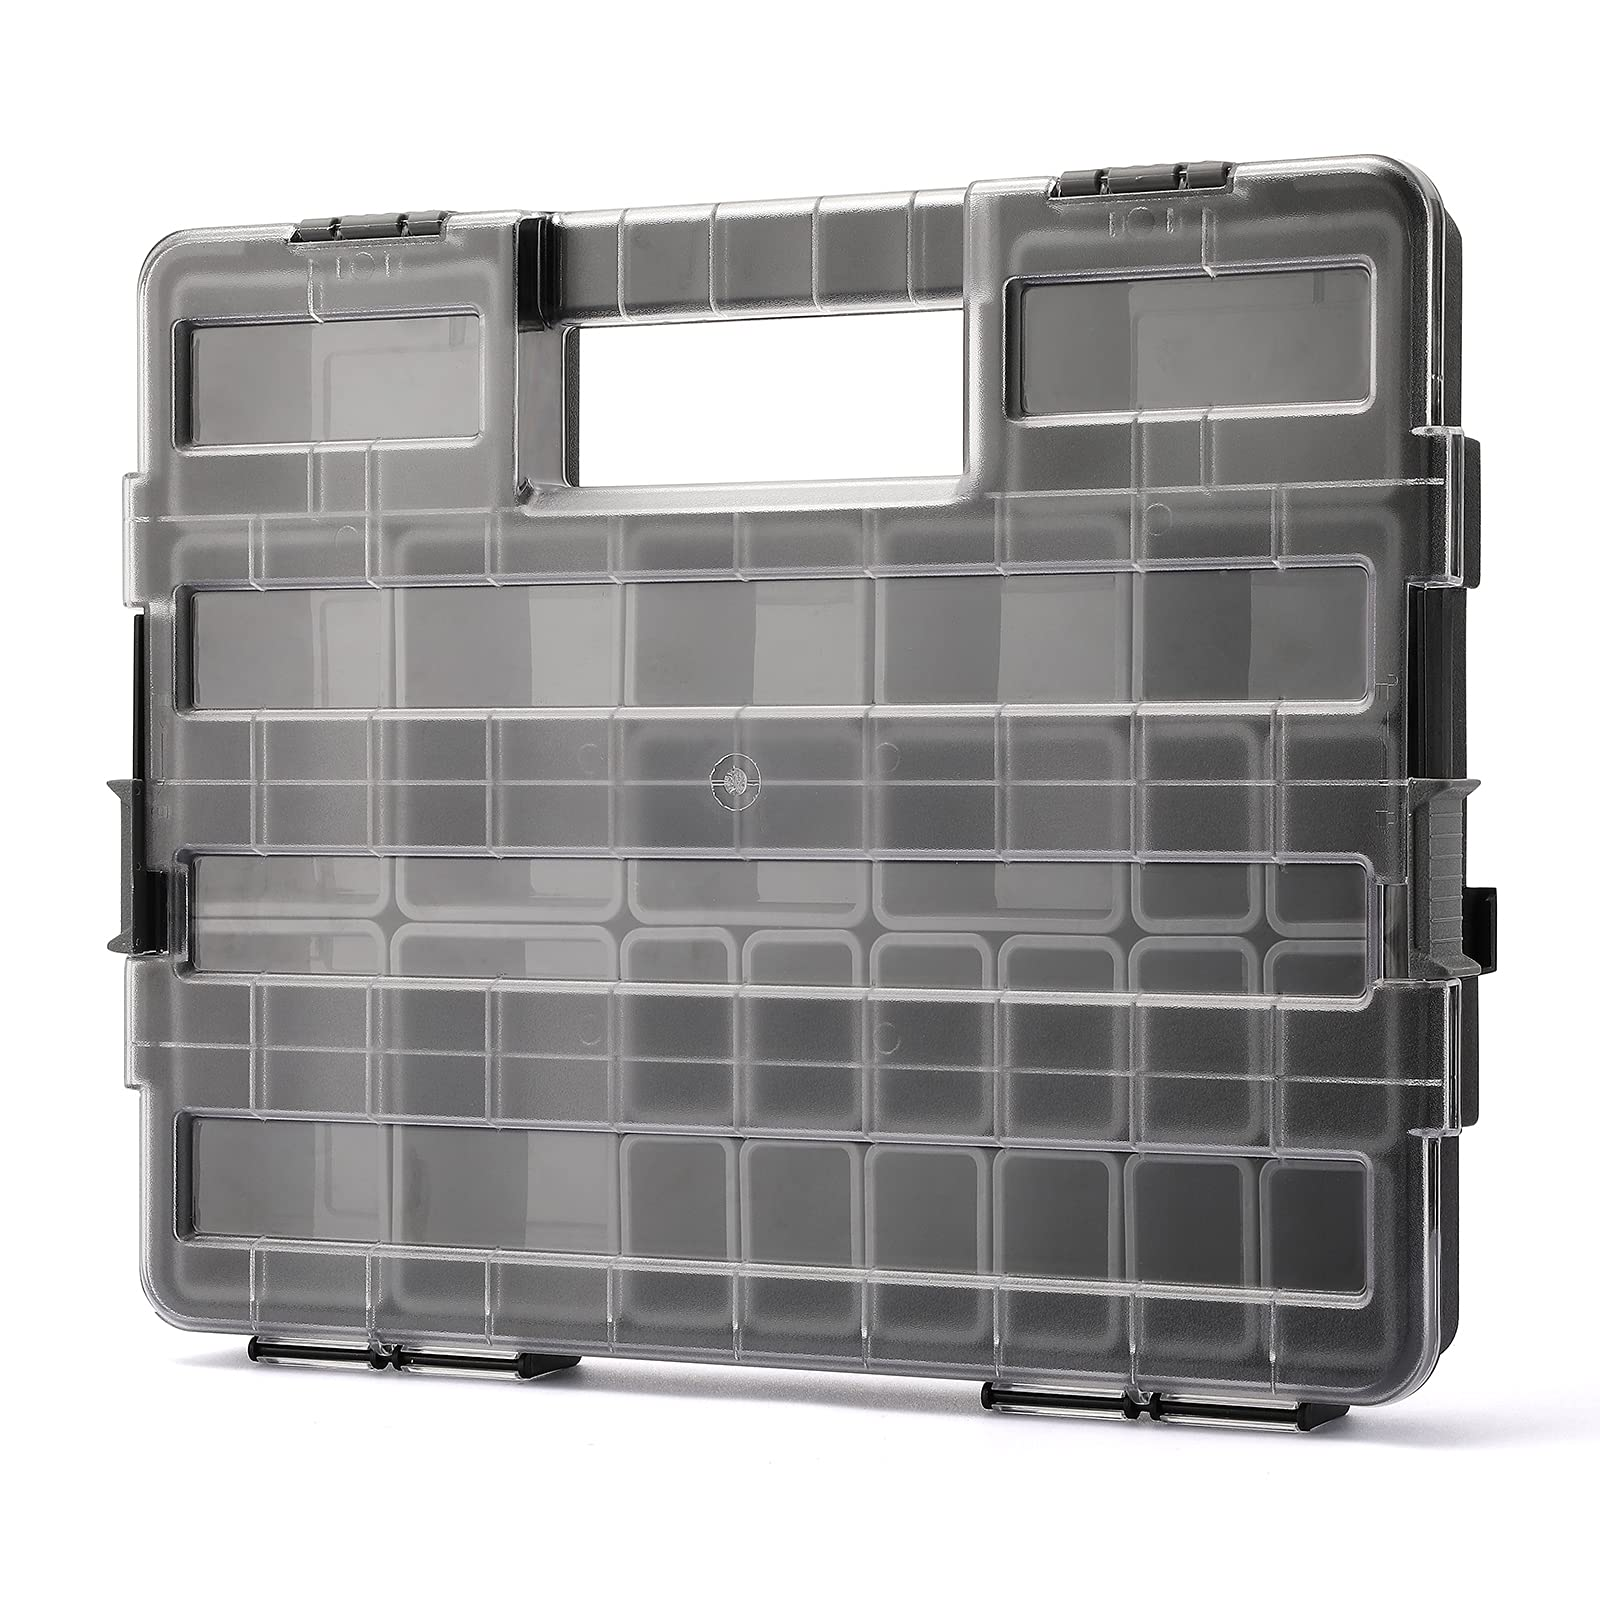 MIXPOWER 16-Inch Portable Storage Tool Organizer with Double Secure Locks and 25 Removable Bin Compartments, Multi-Purpose Hardware Tool Box Storage, Black/Clear